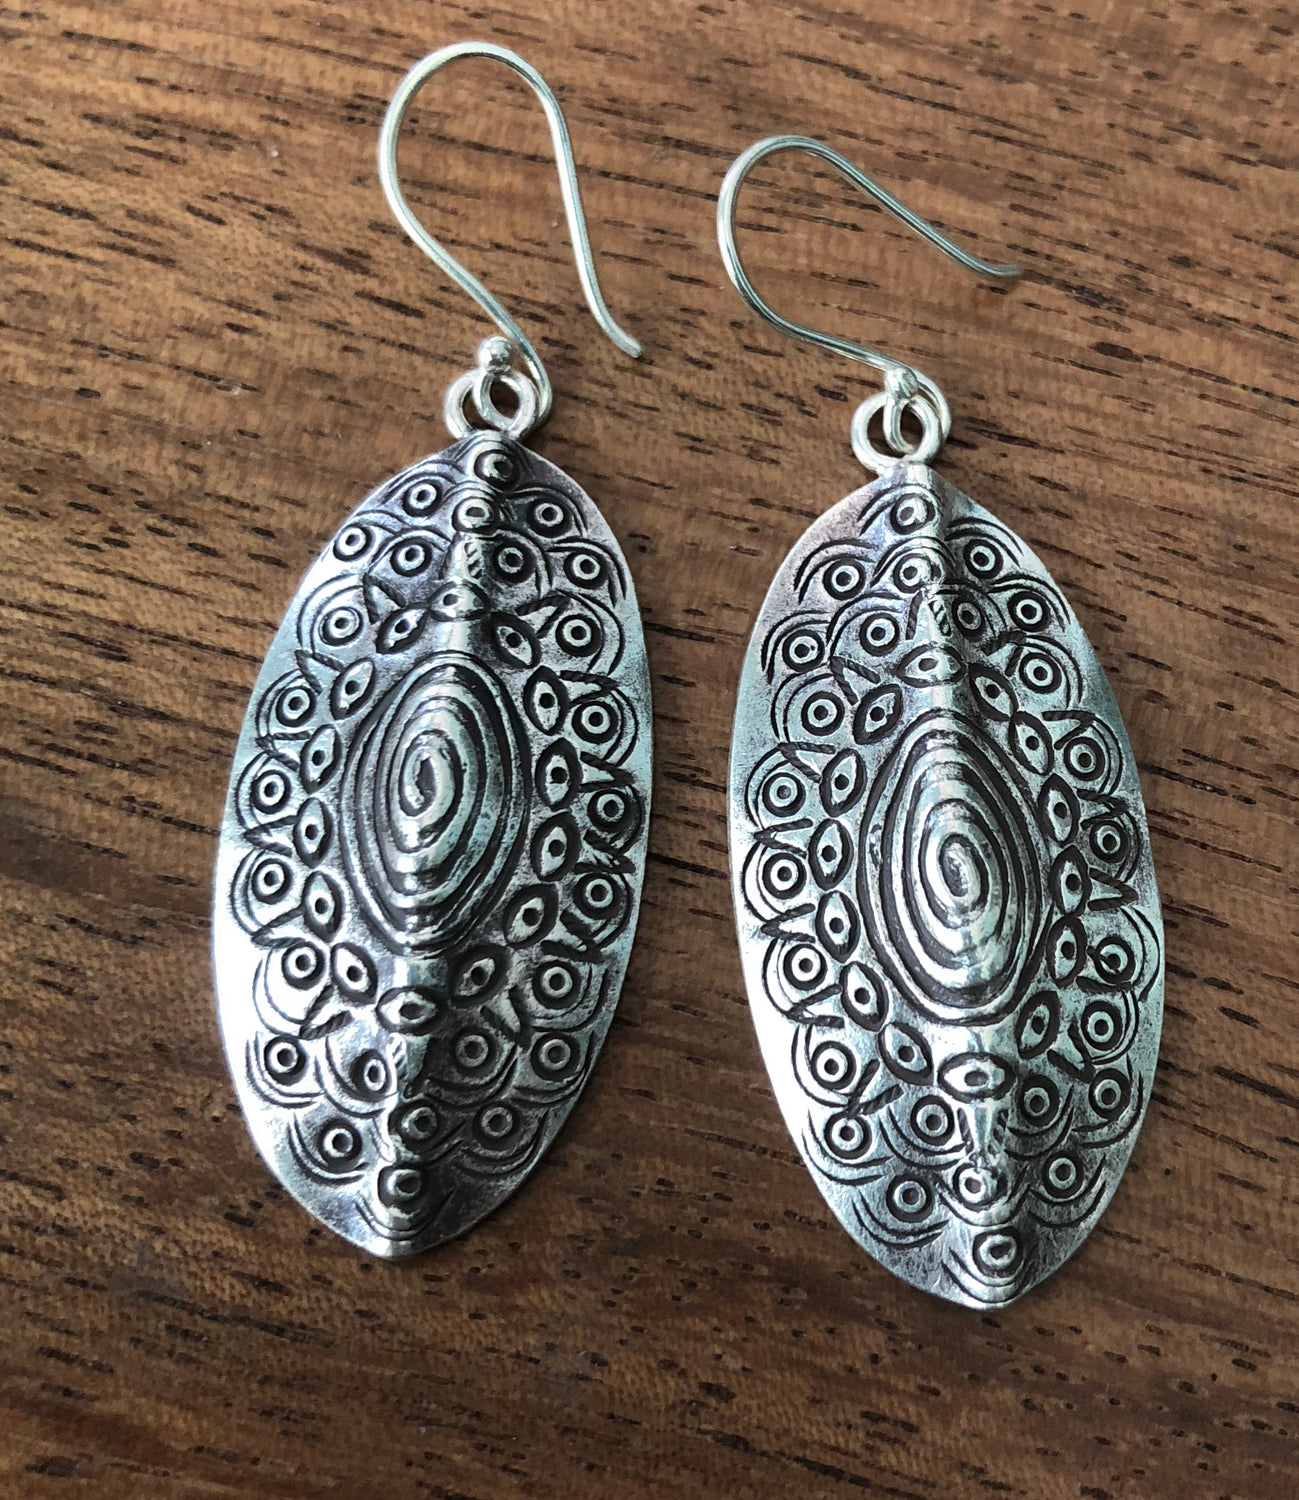 Handmade Sterling Silver Thai Hill tribe Etched Earrings 2 styles